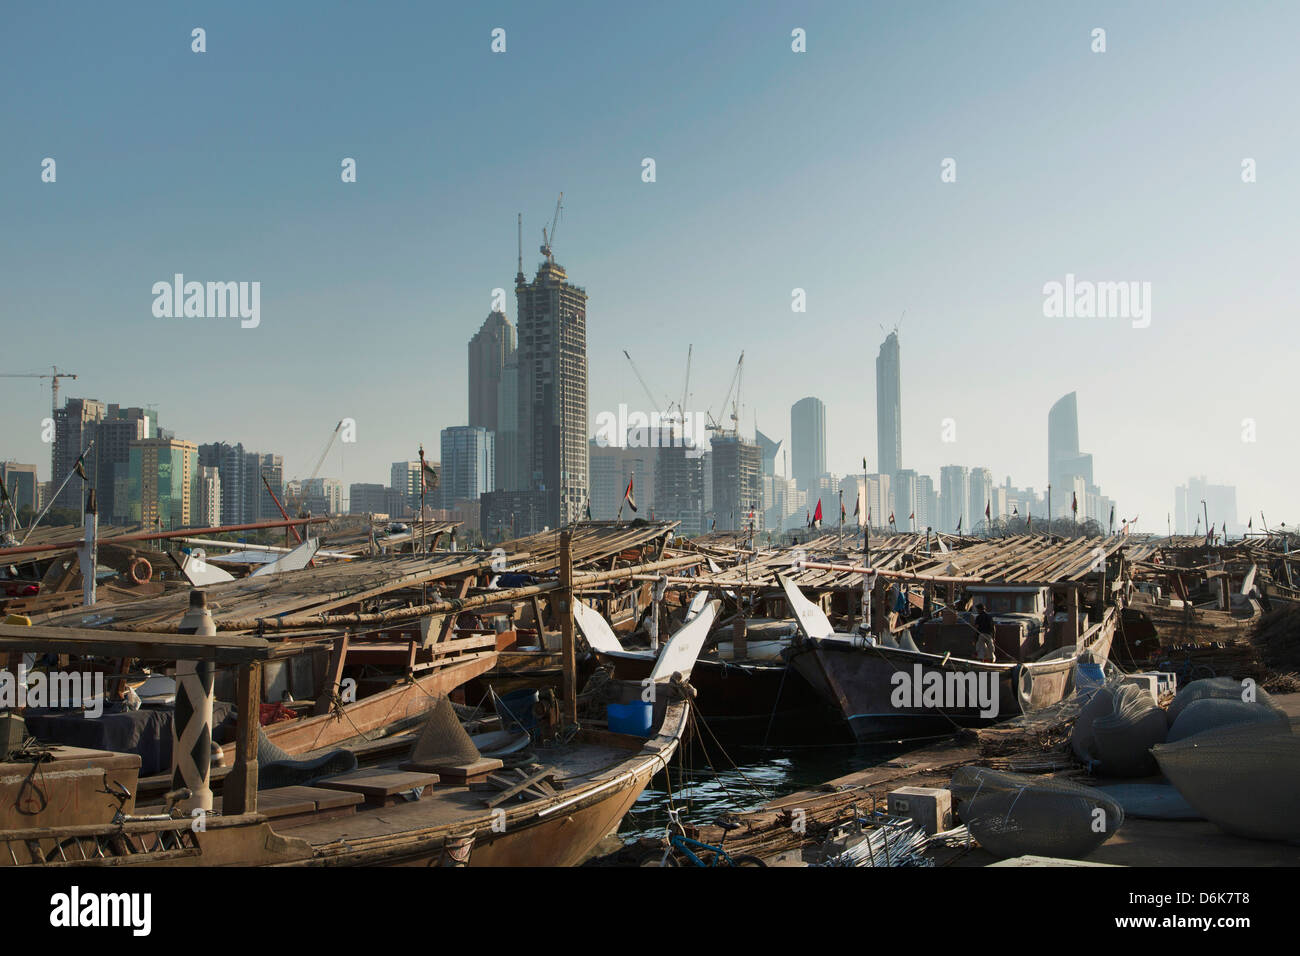 Abu Dhabi, Emirats Arabes Unis, Moyen Orient Photo Stock